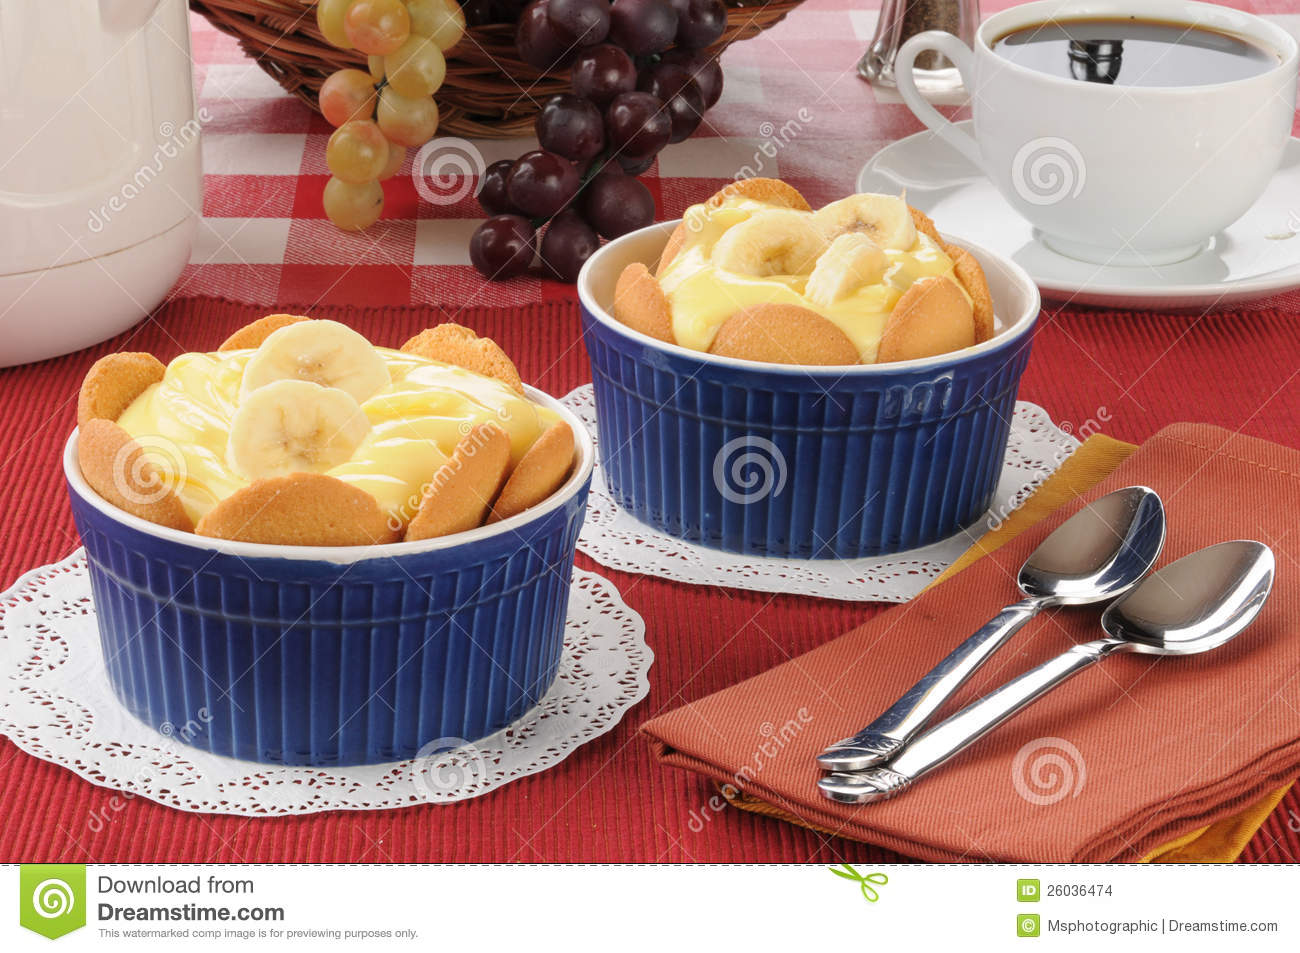 Two Cups Of Pudding With Vanilla Wafers And Banana Slices